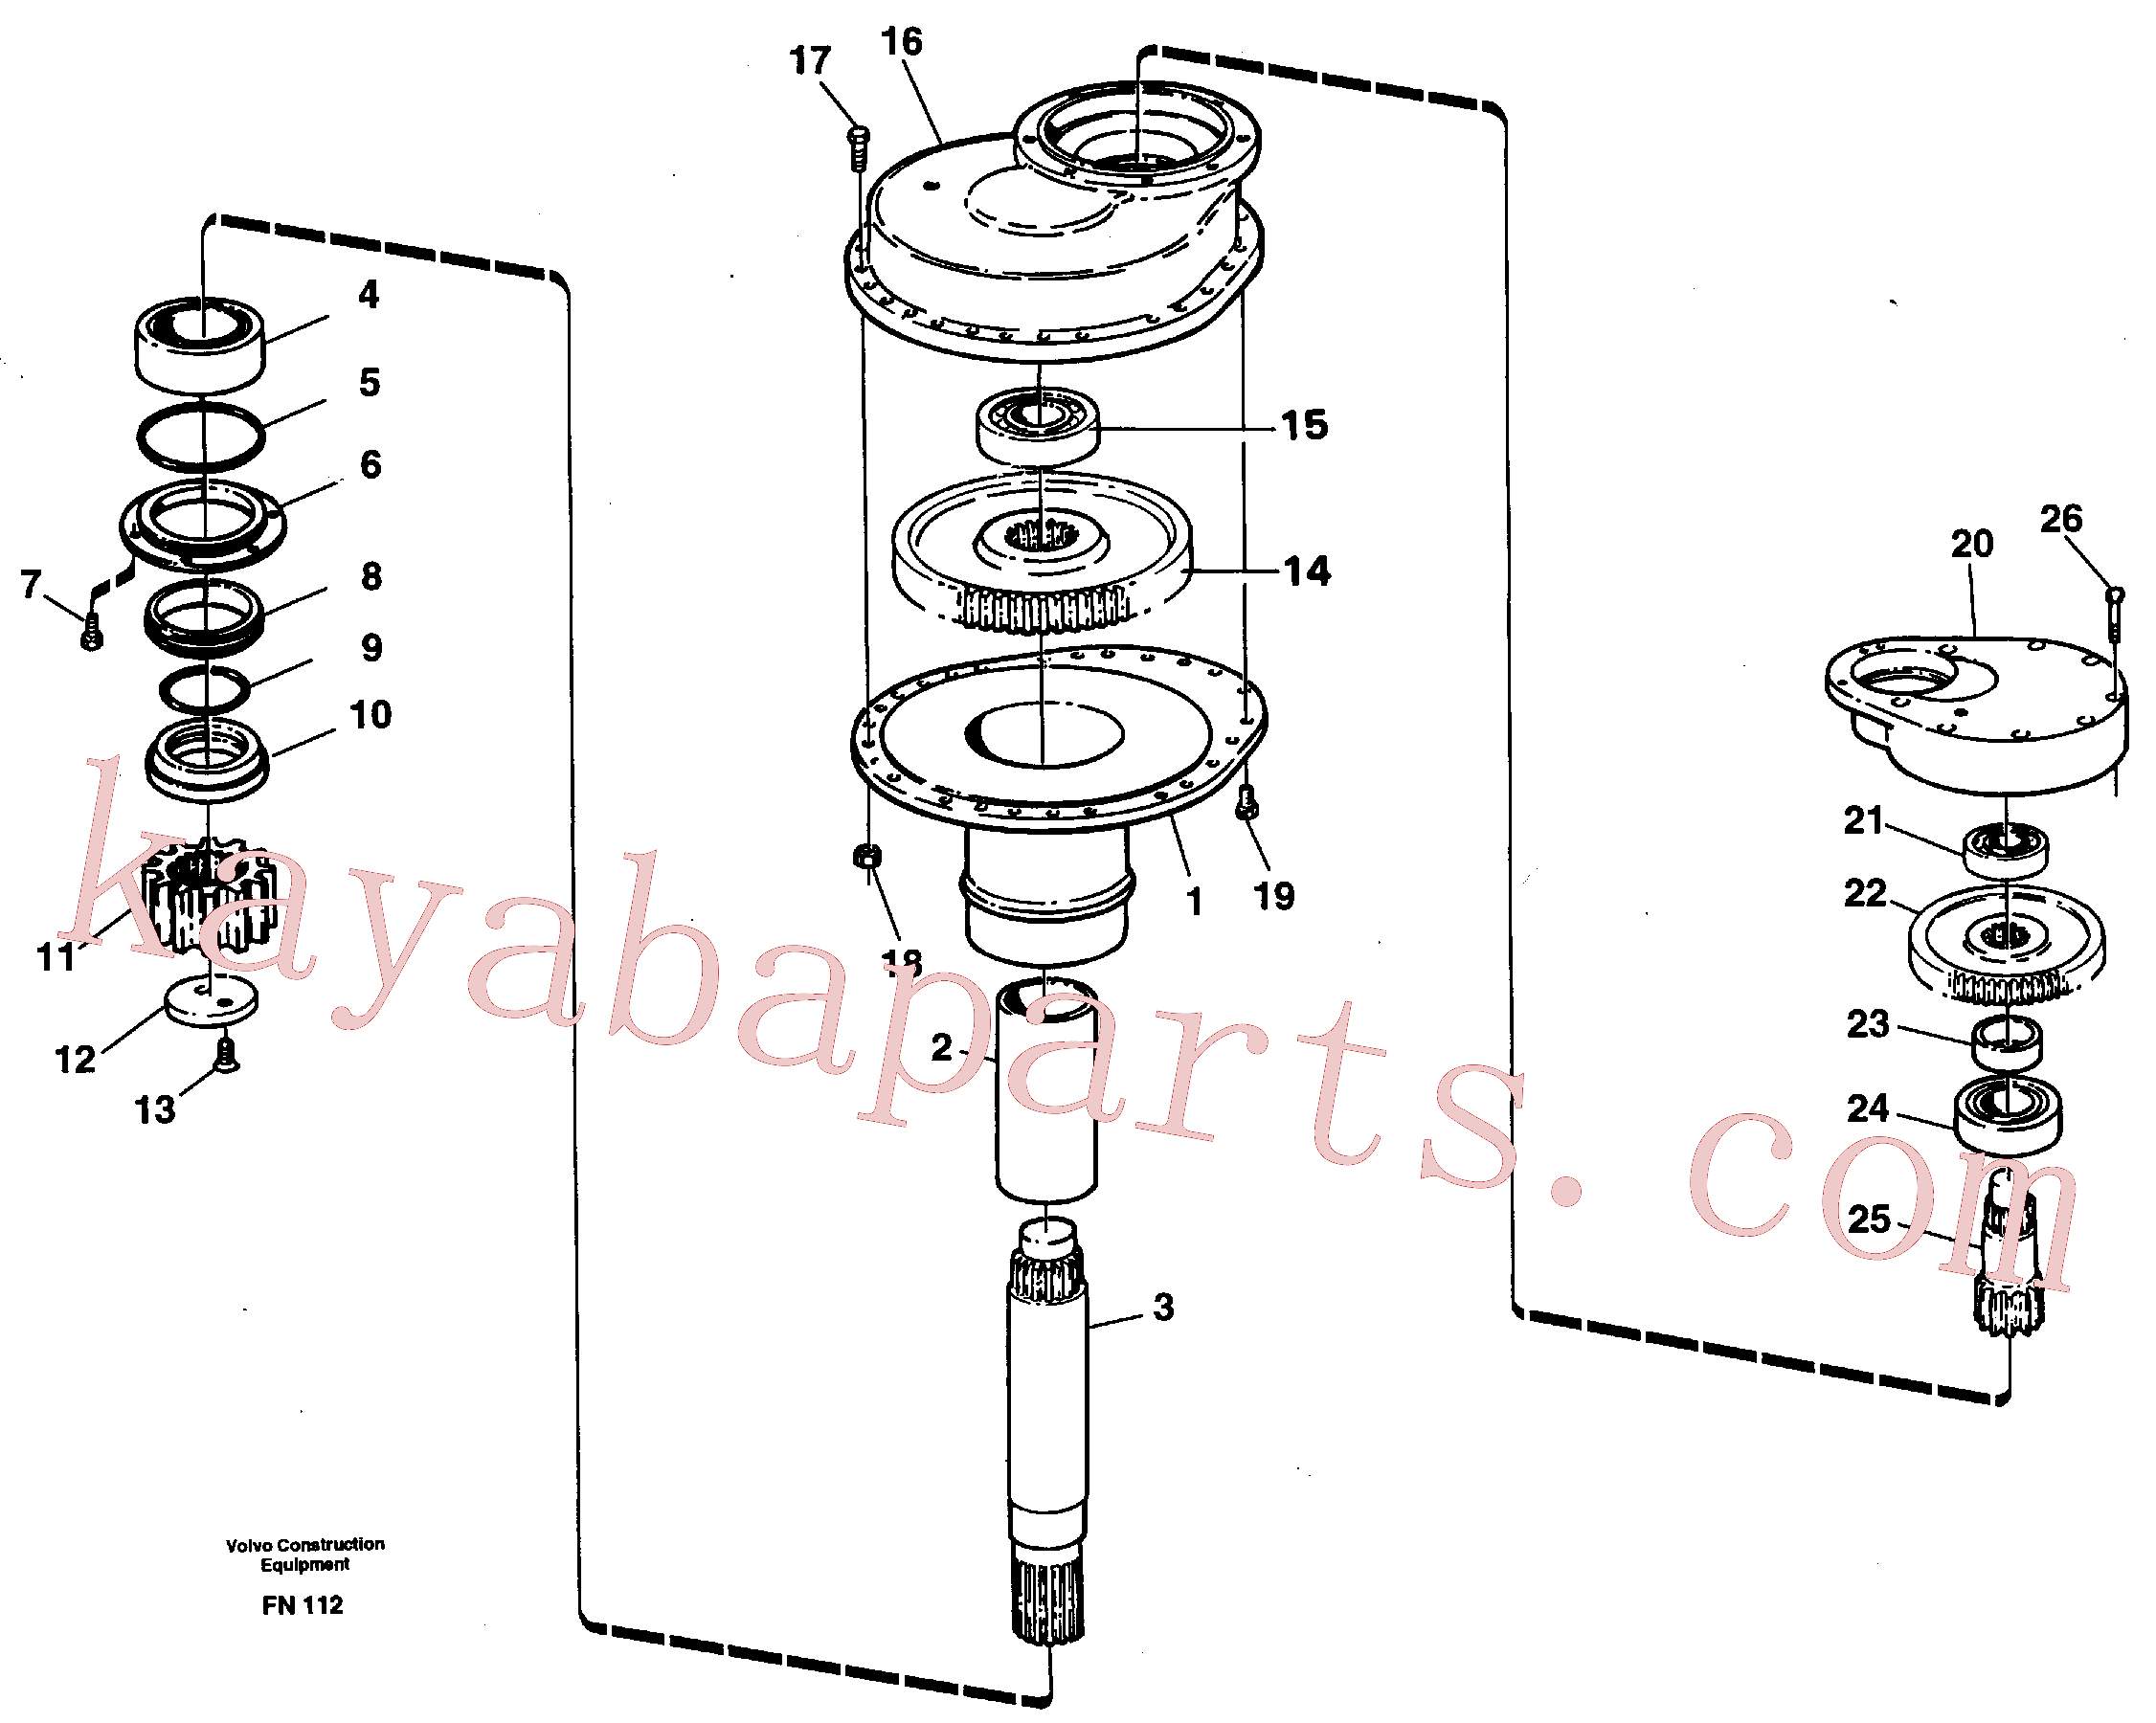 VOE14014601 for Volvo Swing gearbox(FN112 assembly)